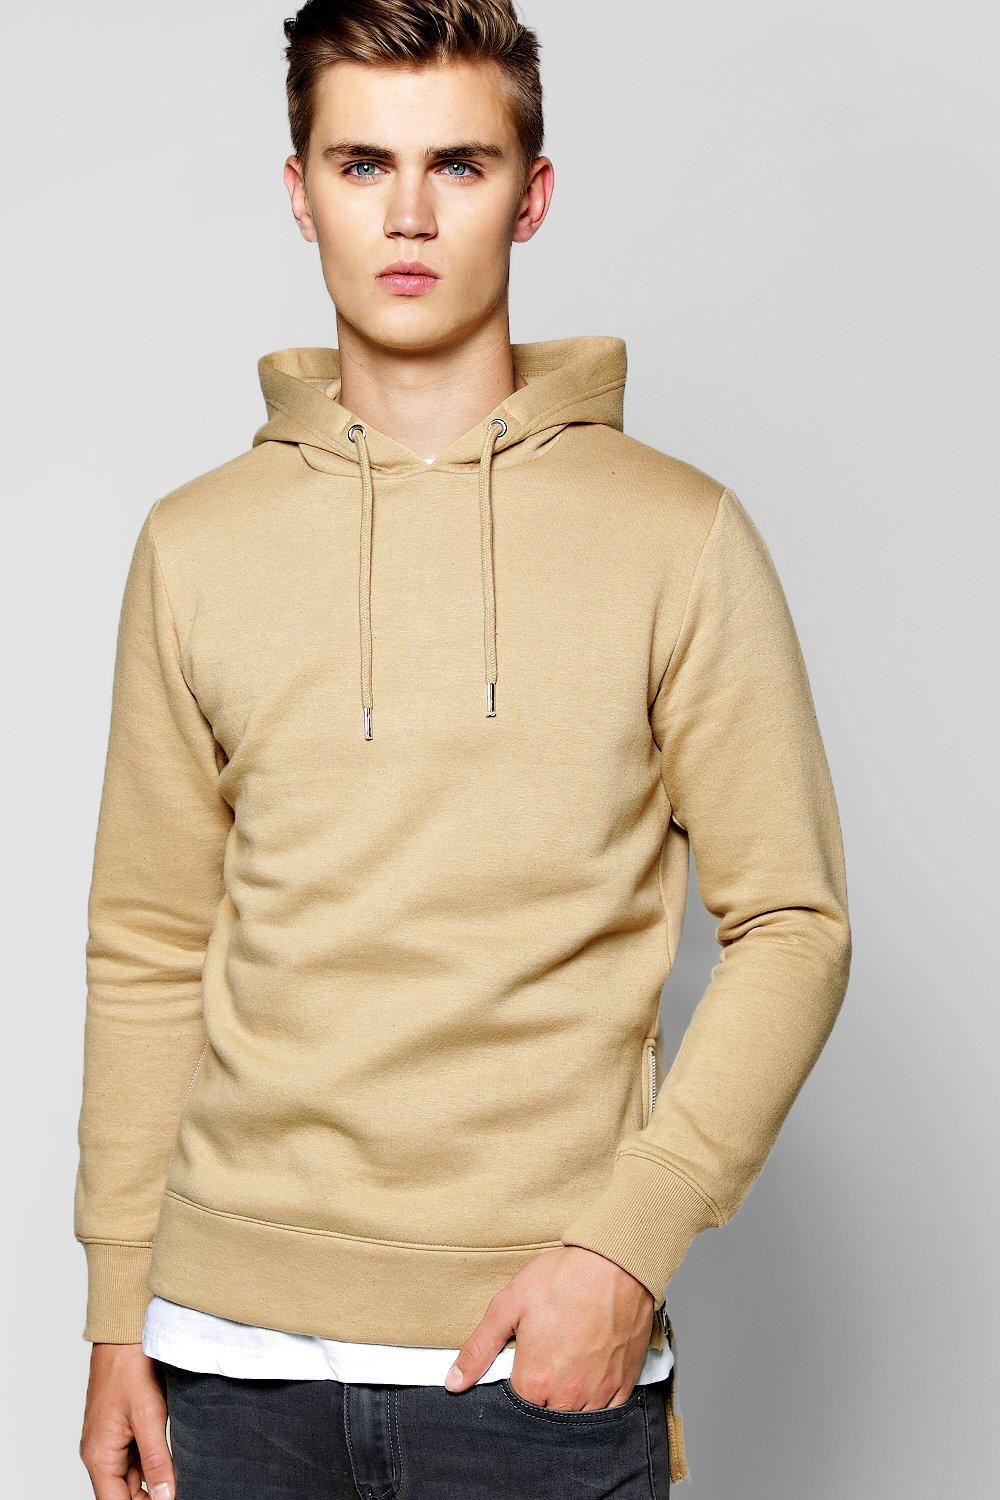 Over The Head Zip Detail Hoodie